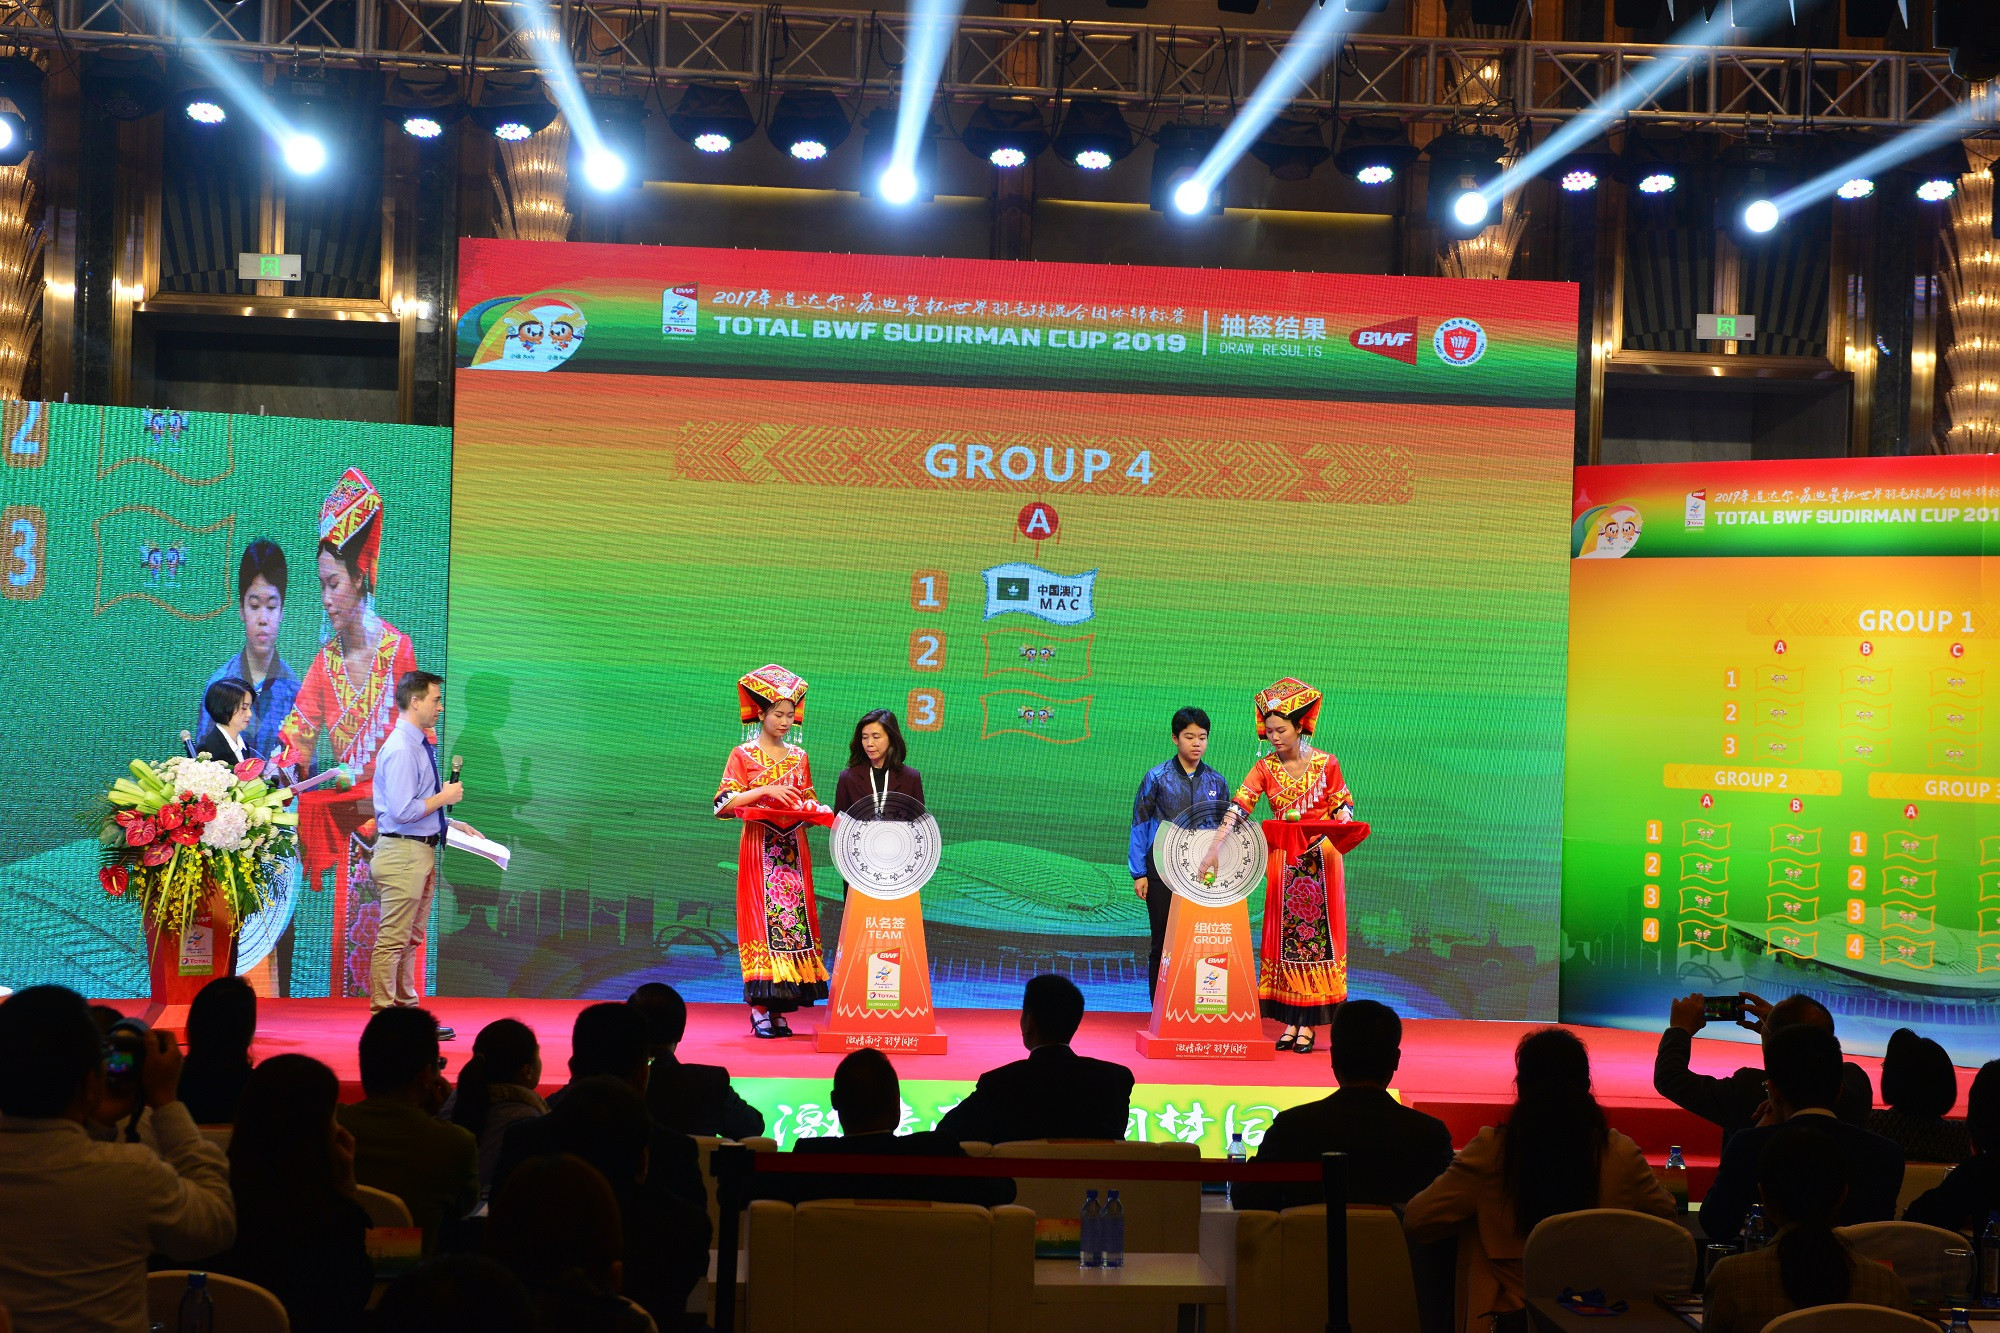 Hosts China handed tough draw in Sudirman Cup